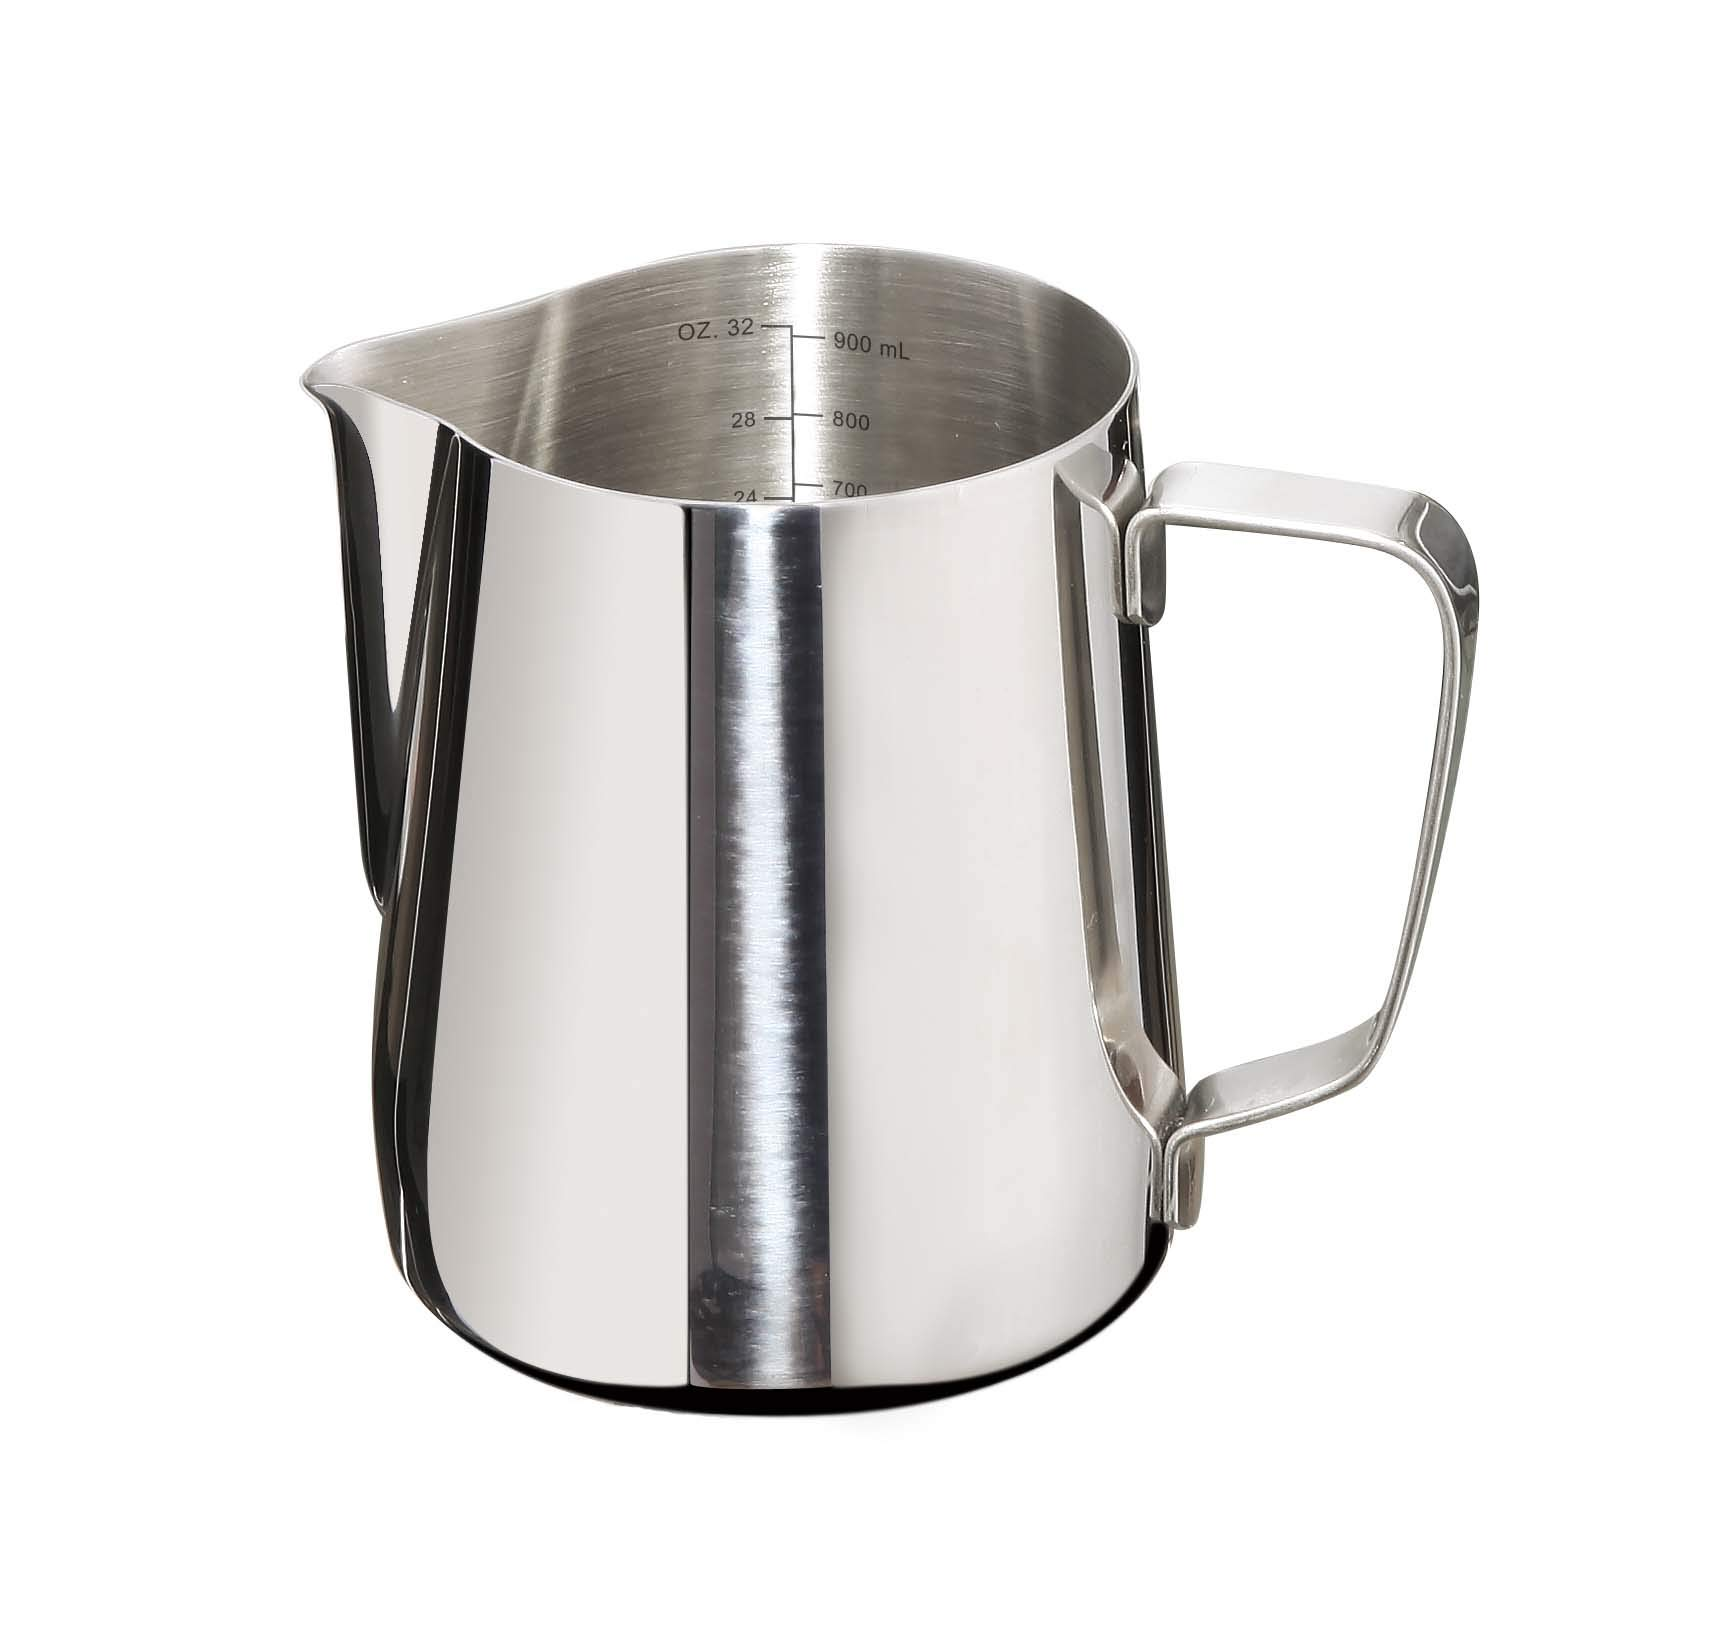 Joytata Milk Frothing Pitcher 32oz Stainless Steel Cup with Double Measurement Scales Perfect for Latte Art,Espresso Maker,Cappuccino Maker-18/8 Stainless Steel Milk Frother Pitcher Steaming Pitcher by Joytata